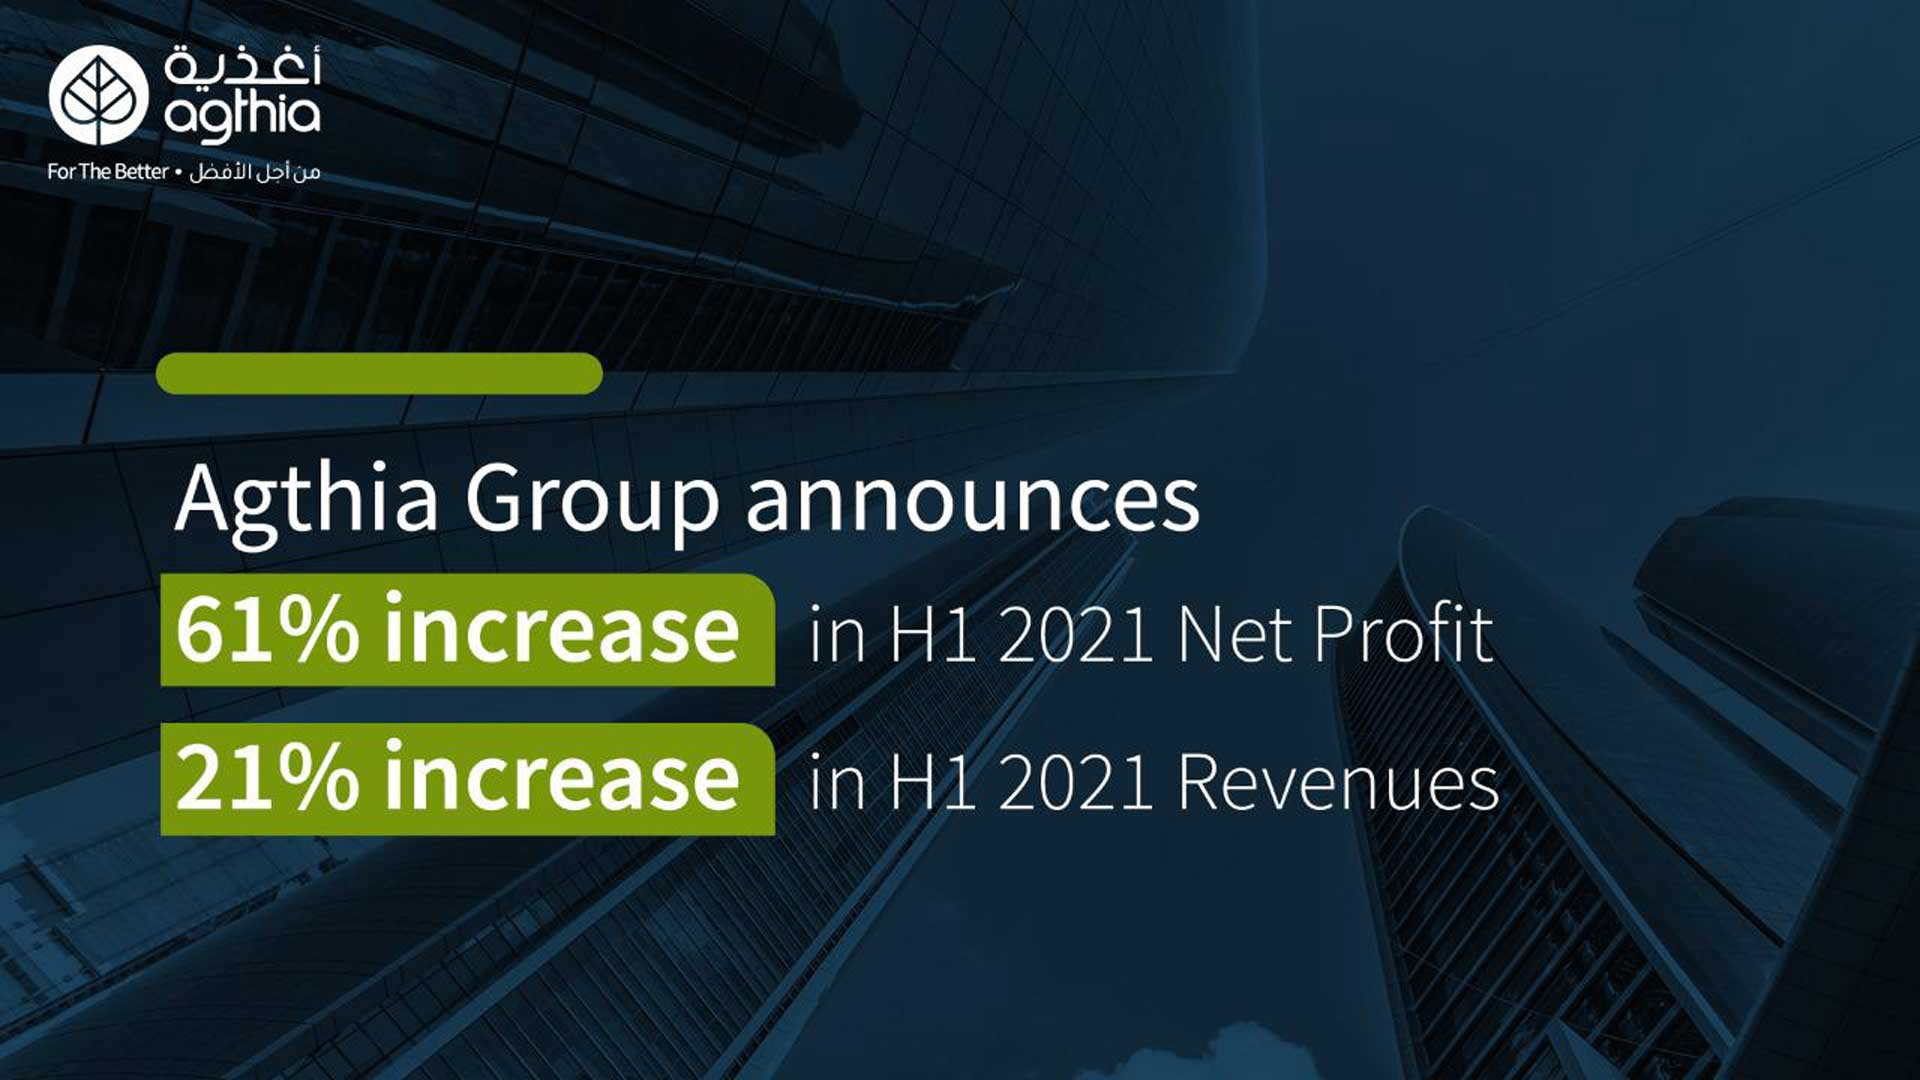 Agthia Group Announces 61% Increase in H1 2021 Net Profit and 21% Increase in Revenue